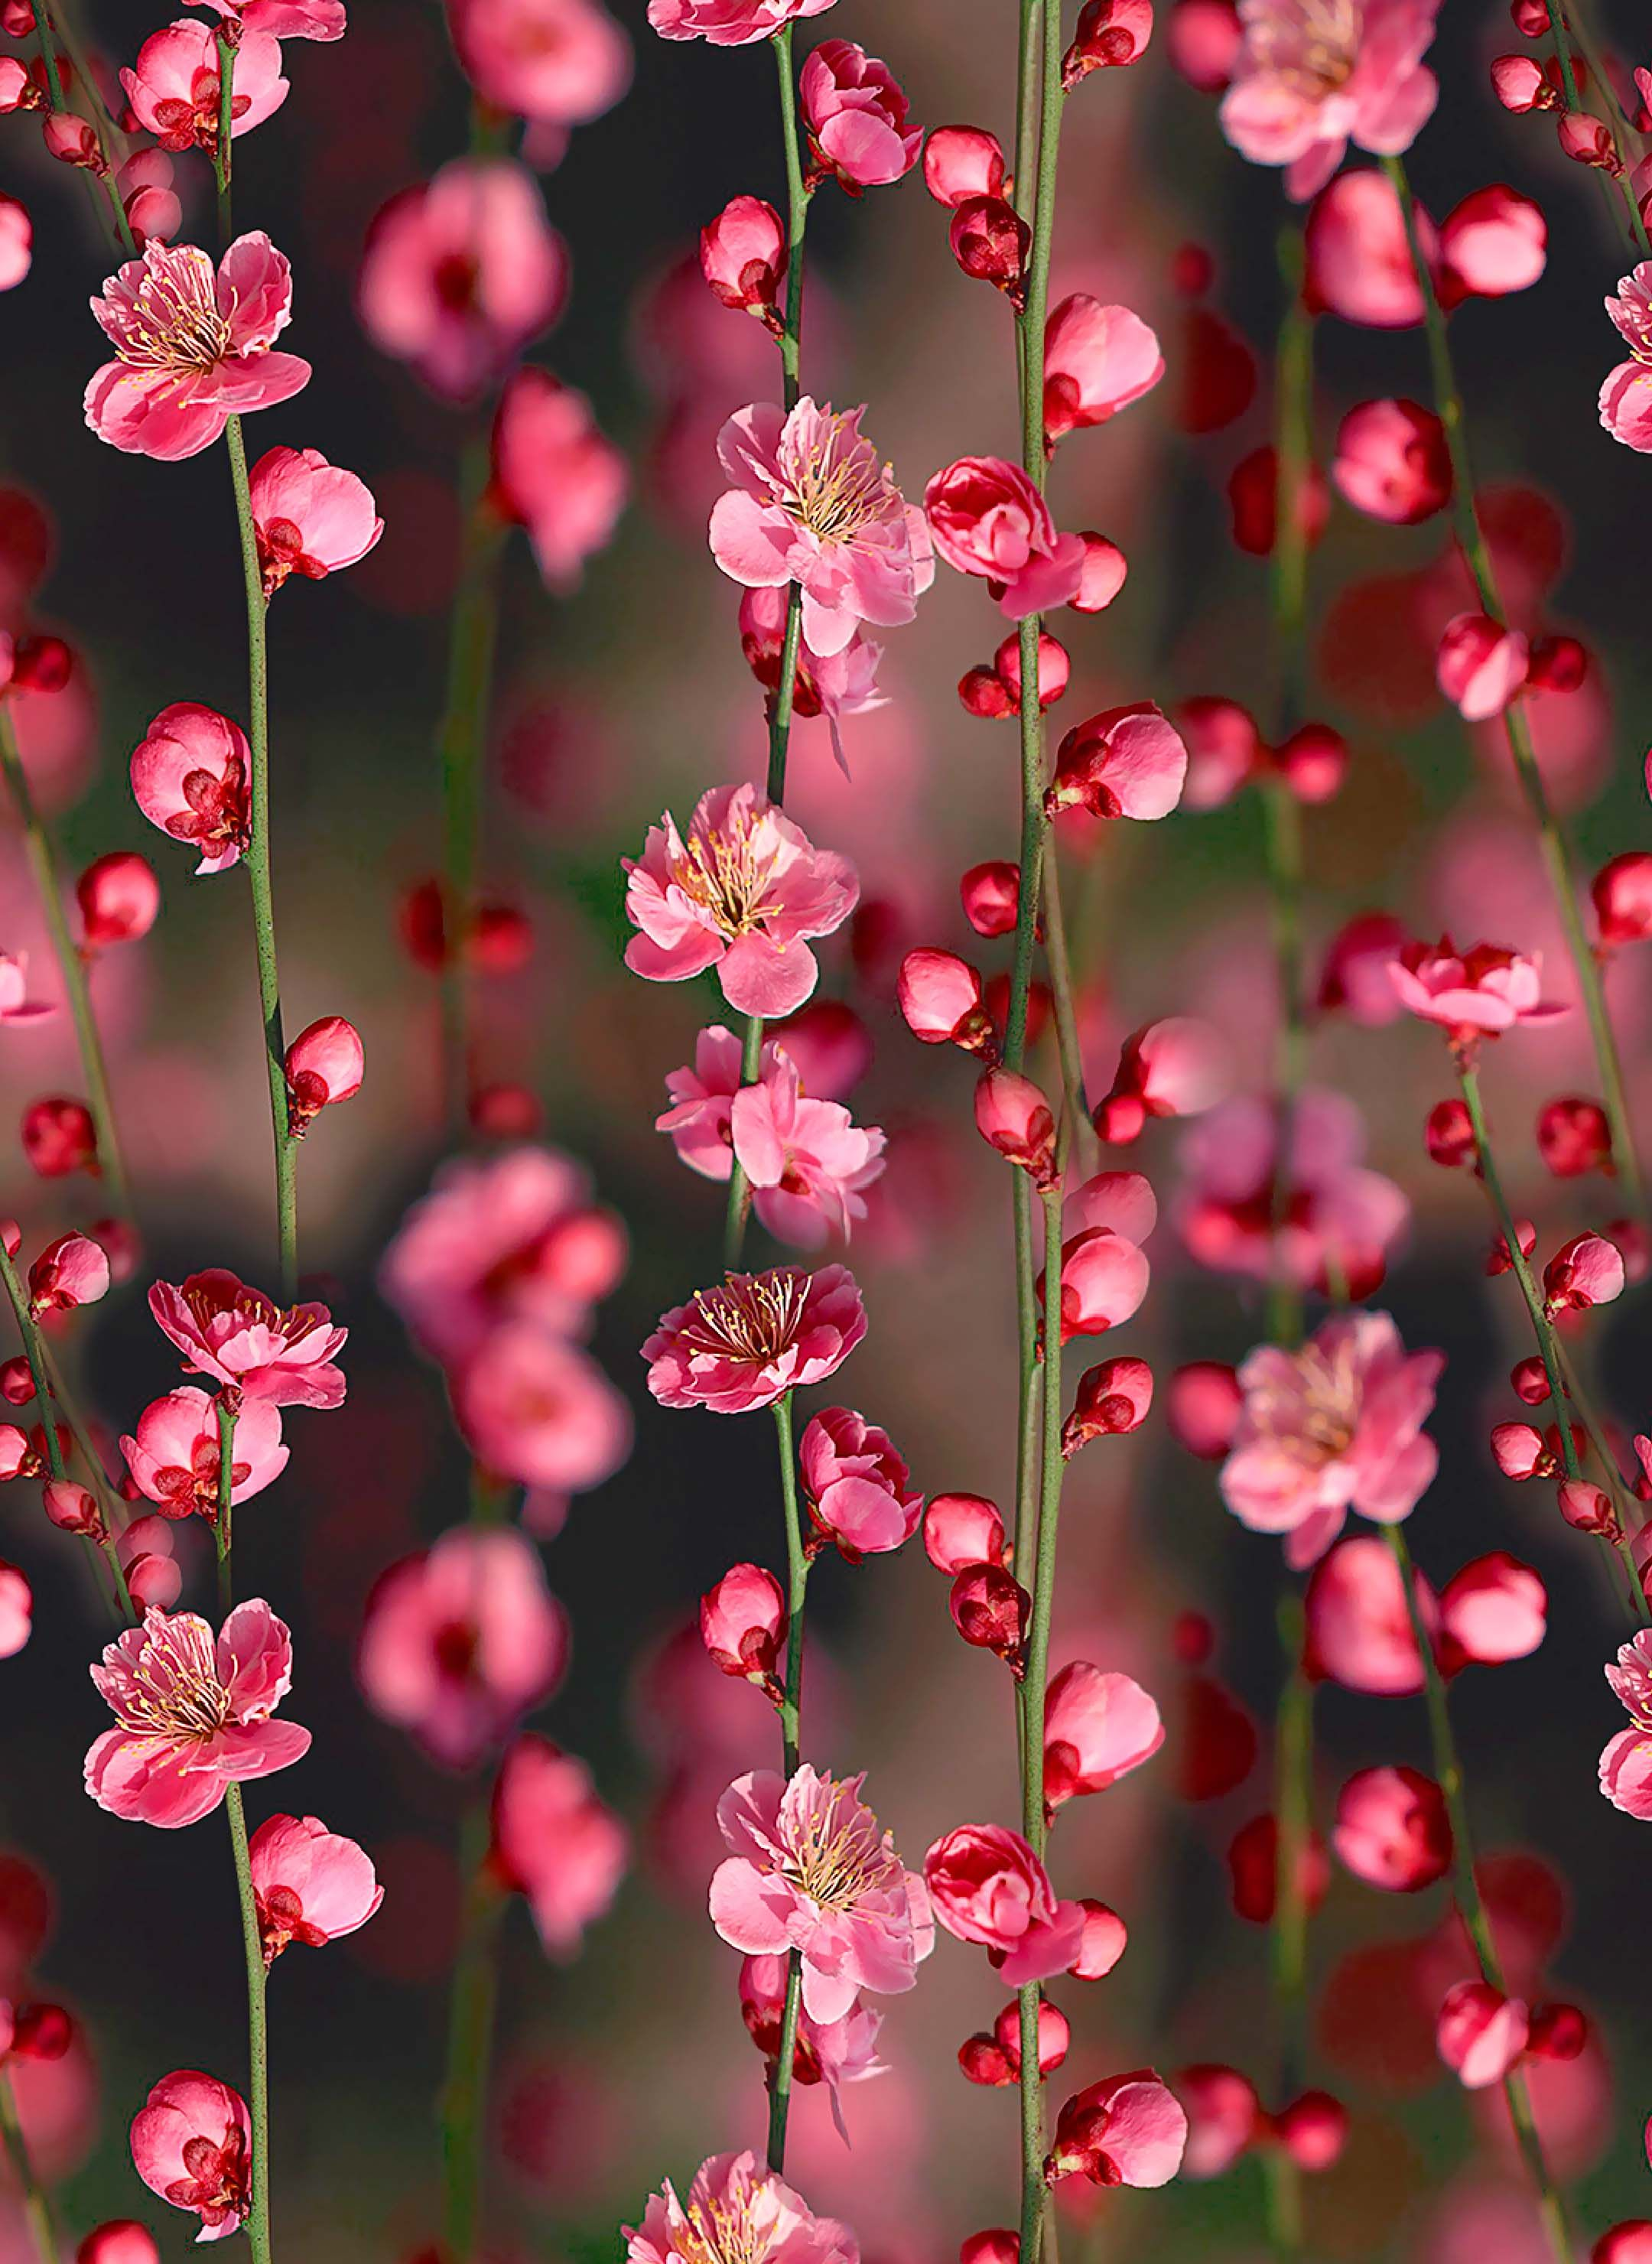 Pin by Sissyeko on Wallpaper Pink flowers wallpaper